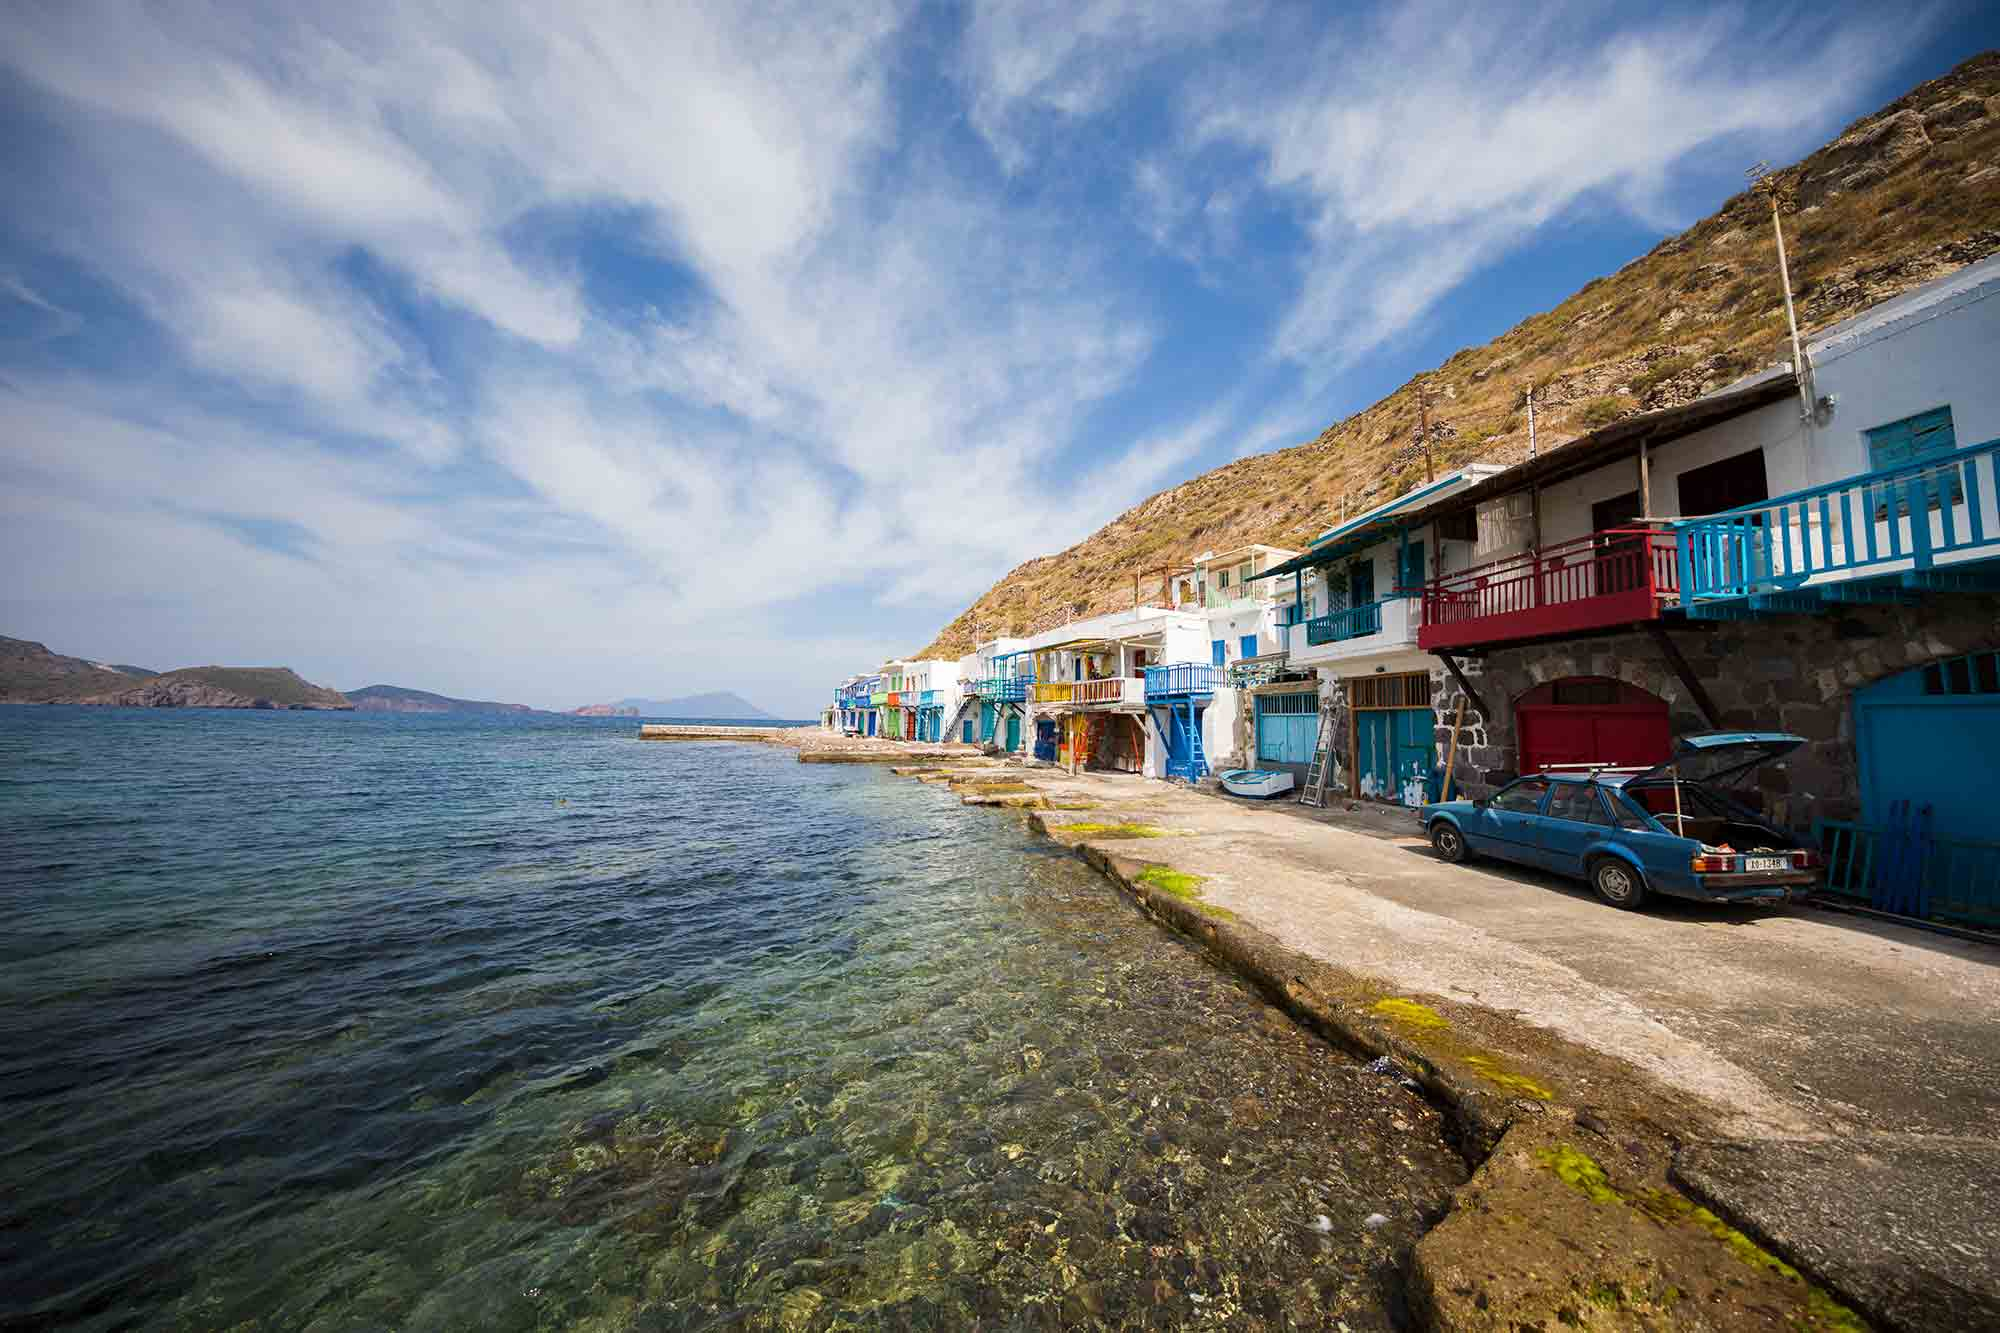 The colourful fishing village of Klima can be seen from the ferry when arriving on Milos island. © ULLI MAIER & NISA MAIER